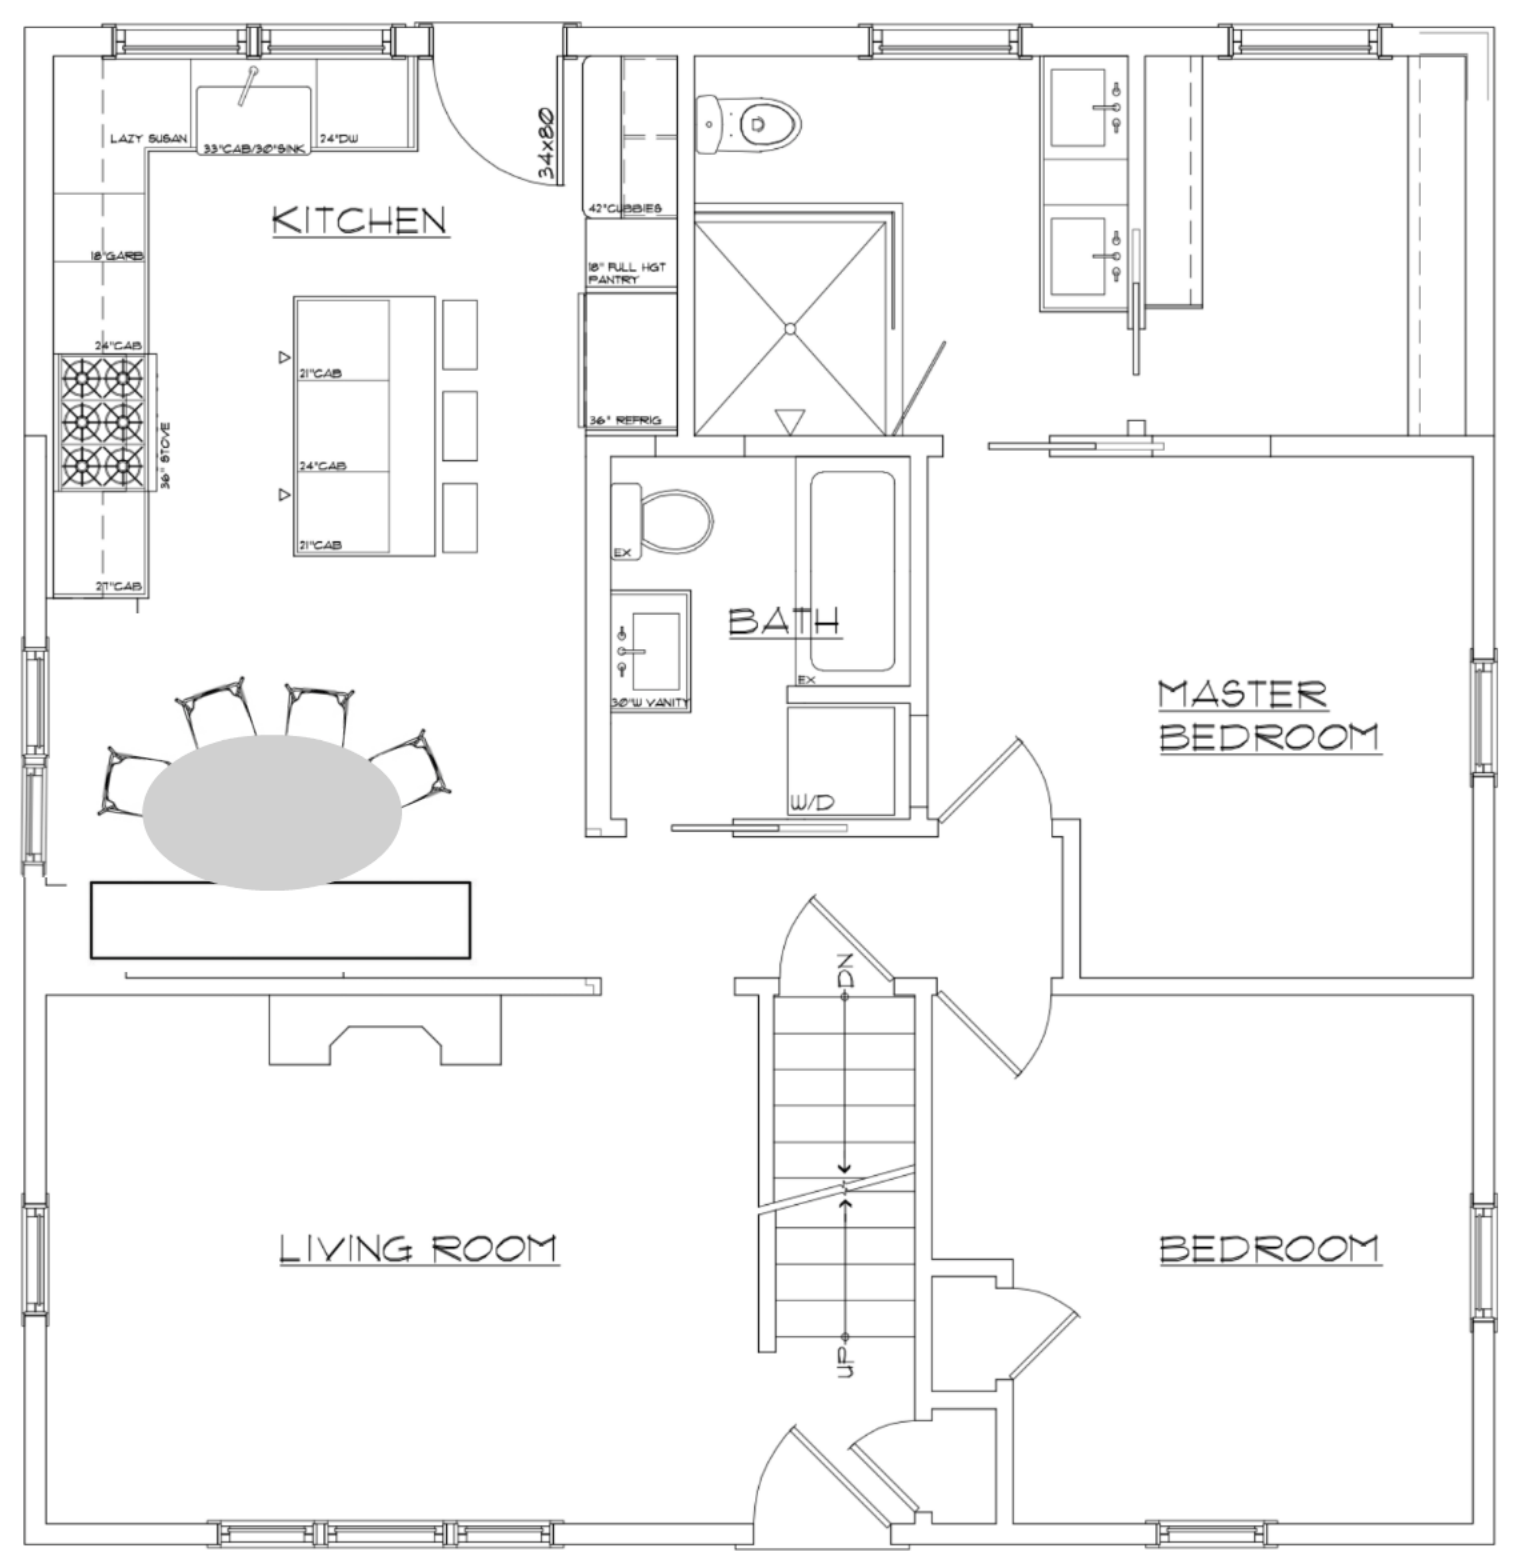 Cape Remodel- Elevation Plans